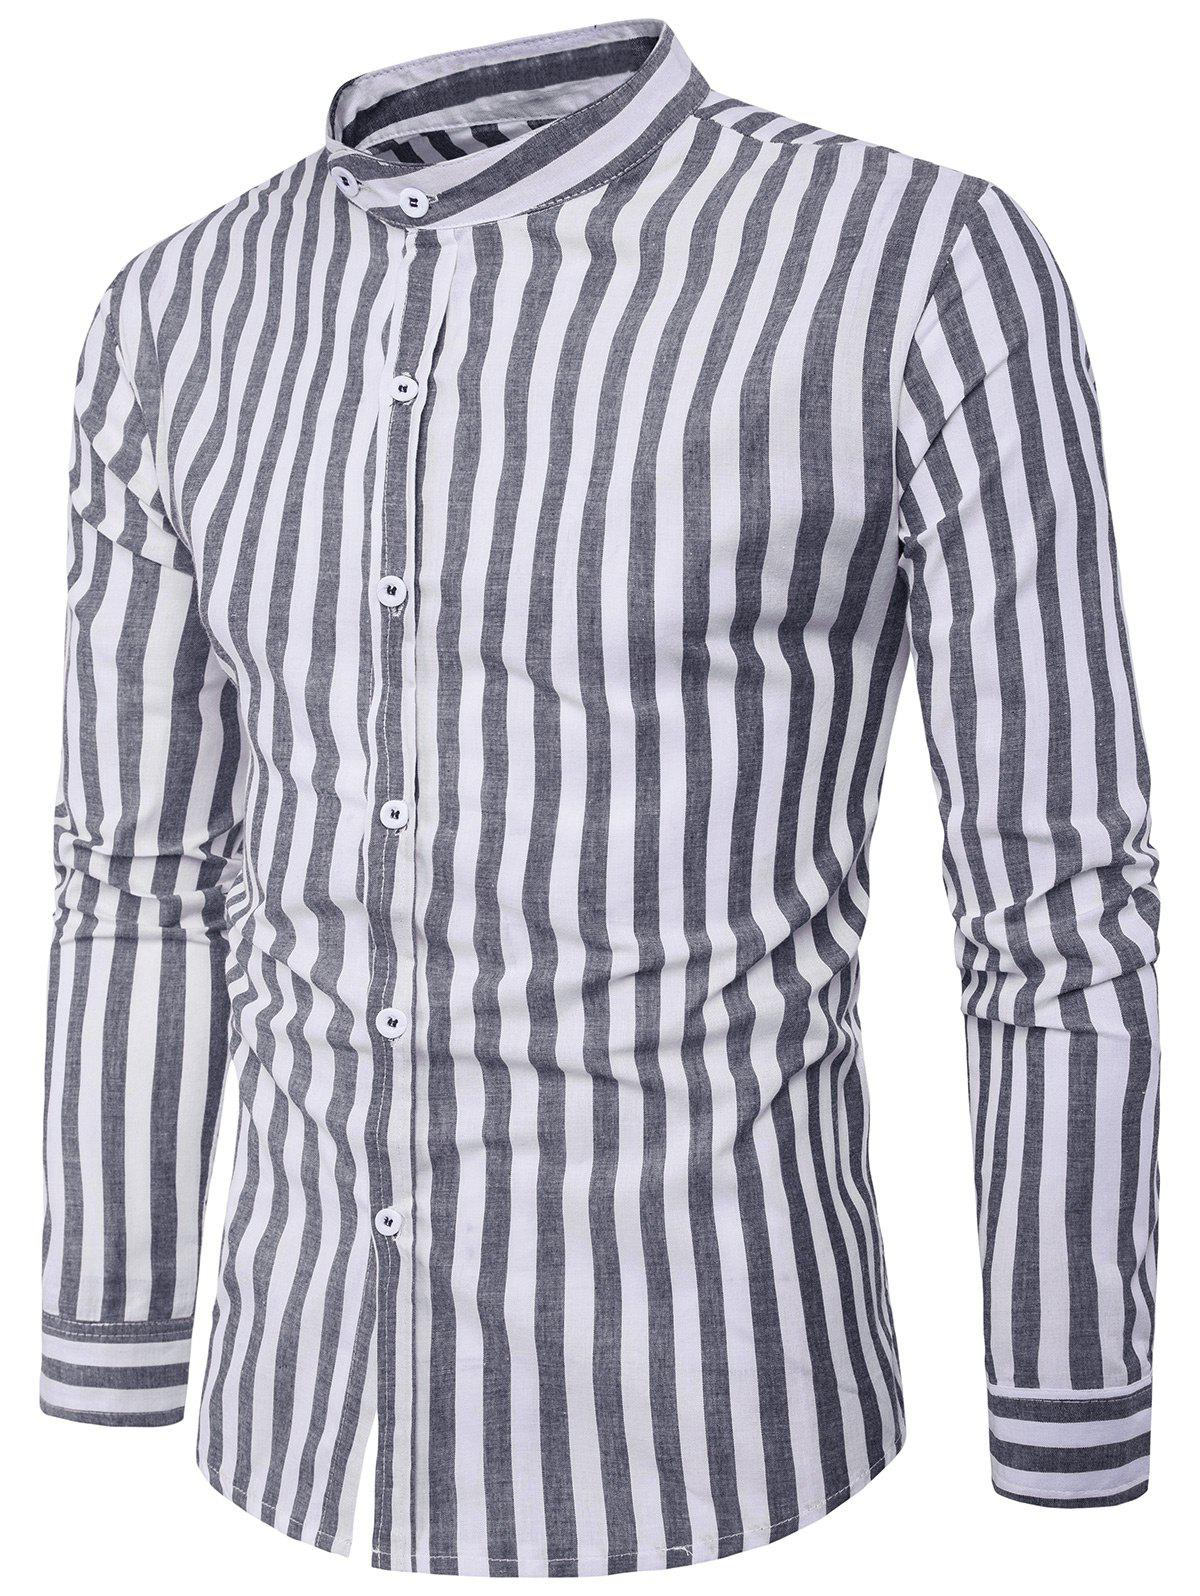 Vintage Vertical Stripe Long Sleeve Shirt